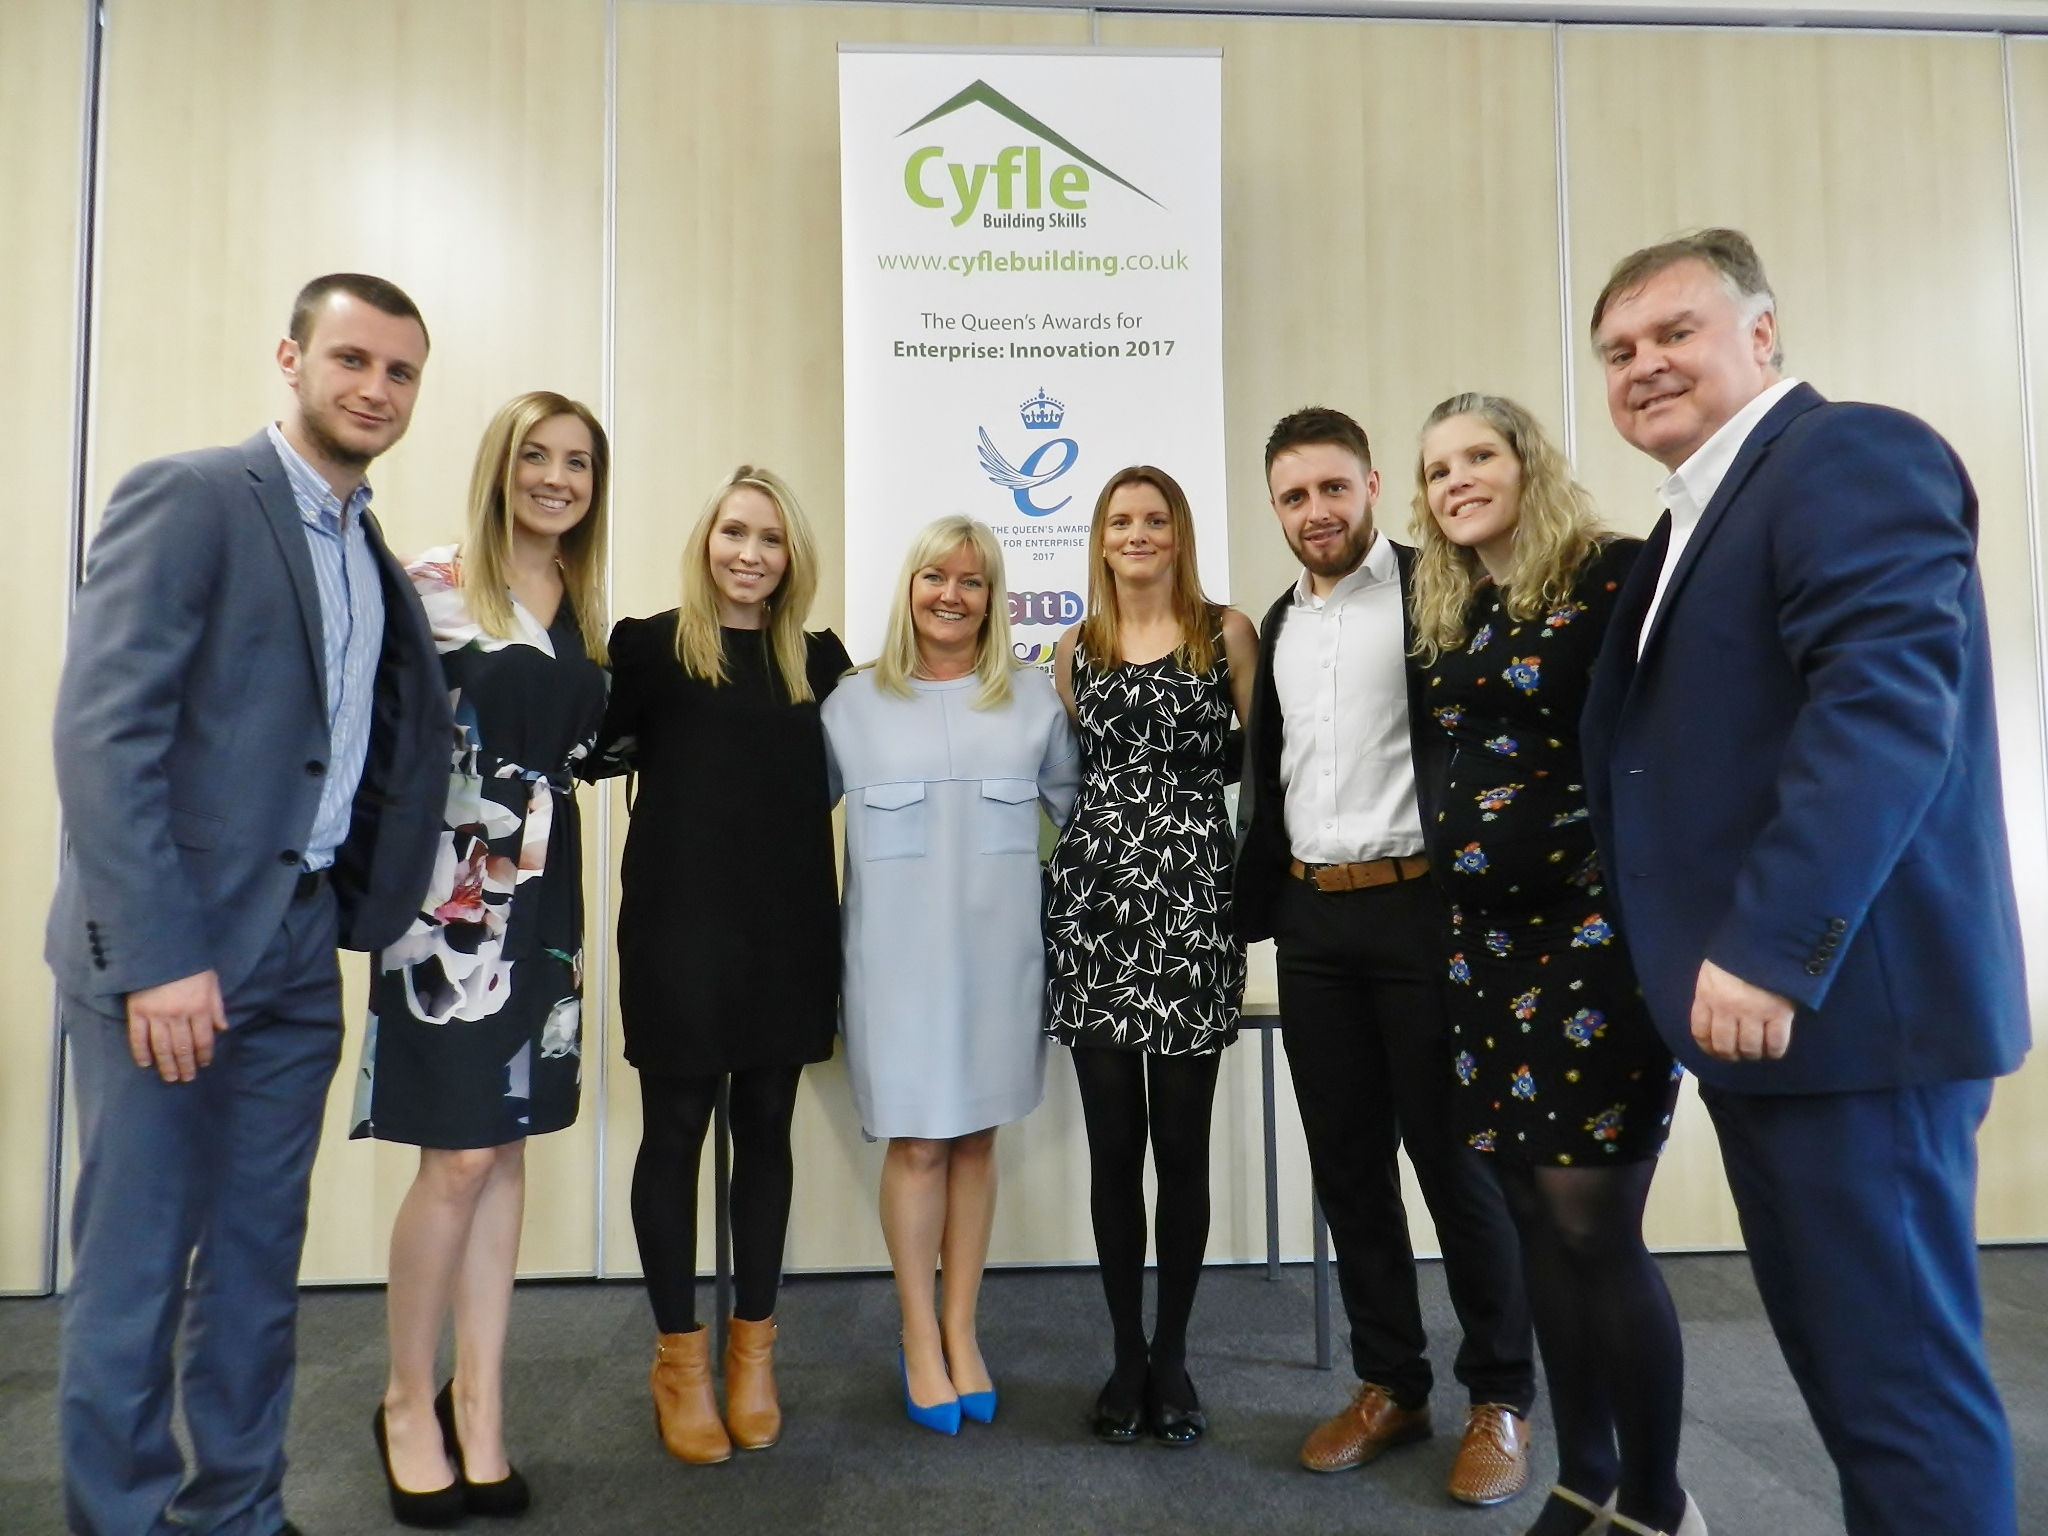 Cyfle Building Skills Scoops the Queens Award for Enterprise – Innovation